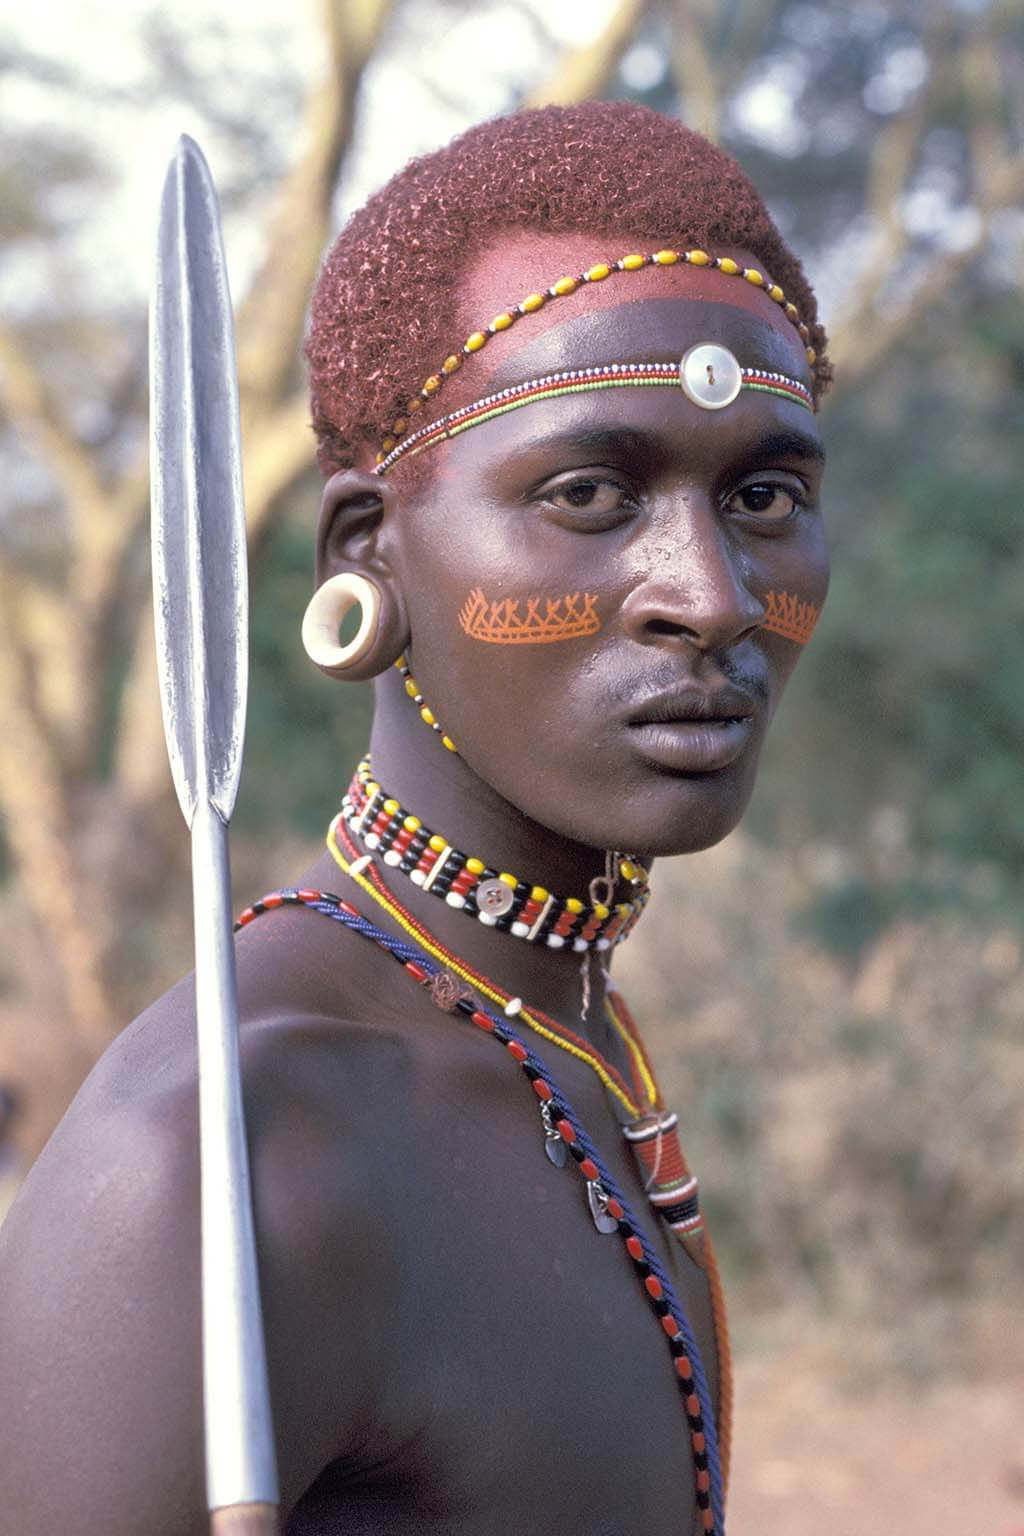 Member of the Samburu tribe